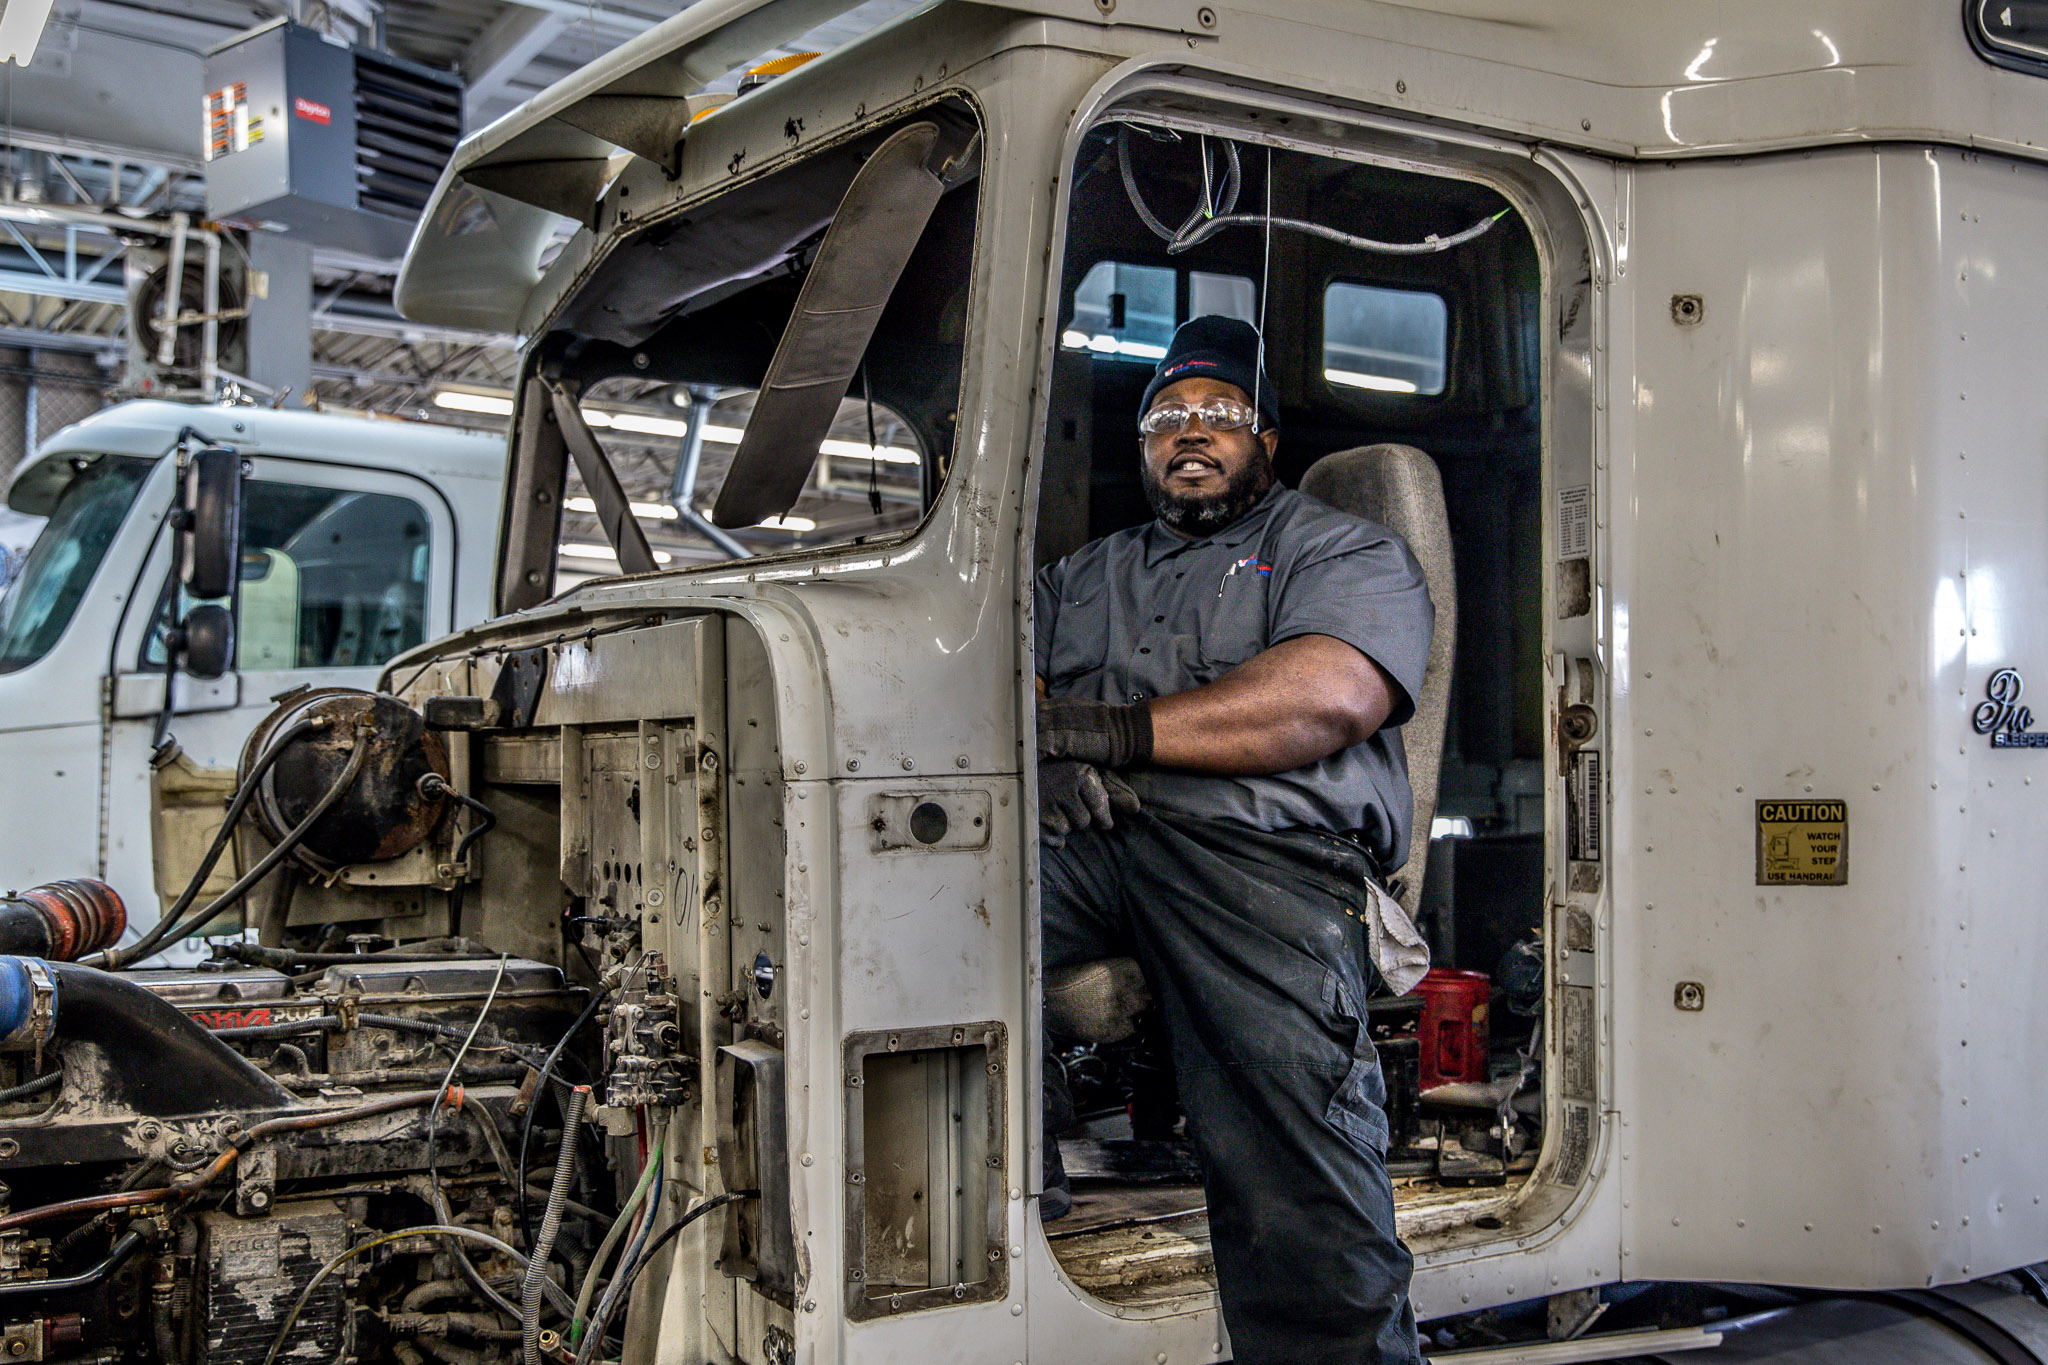 Diesel Technology w/ CDL - The objective of this program is to graduate an entry level diesel technician trained in all areas of diesel repair, maintenance, failure analysis and diagnosis. The Diesel Technician Program is structured to provide the student with entry level job skills and knowledge to enter the work market as a diesel technician. Students completing this program will receive training in Commercial Truck Driving Operations and will be eligible to test for a Commercial Driver's License.